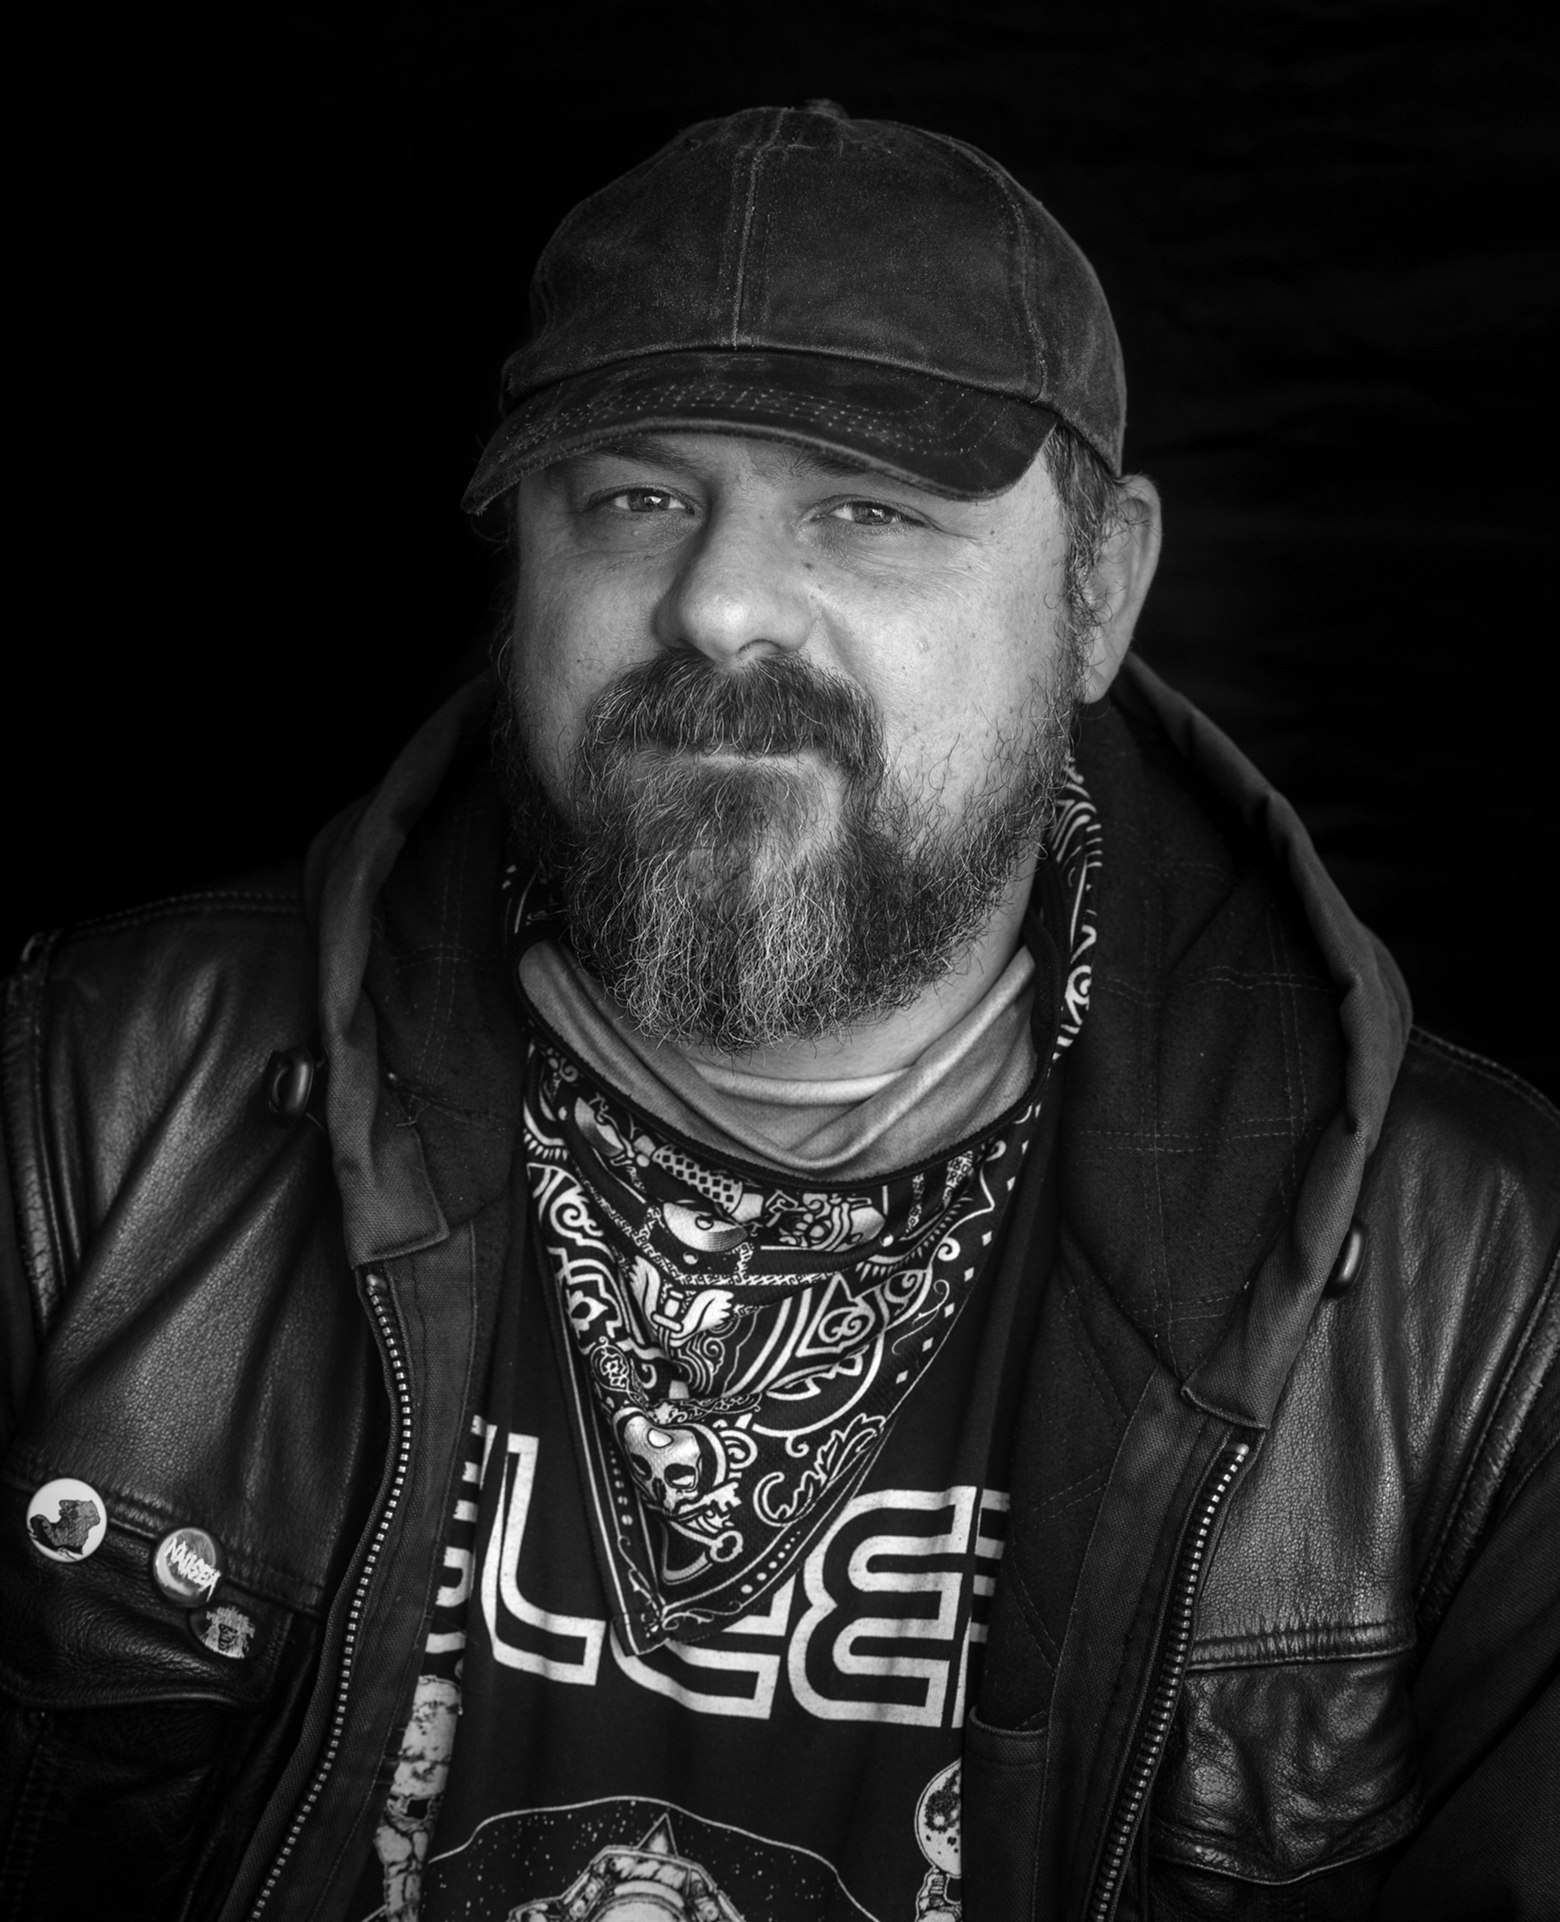 Graham Pruss wearing a black leather jacket. A handkerchief is around his neck and he's wearing a dark denim ball cap.